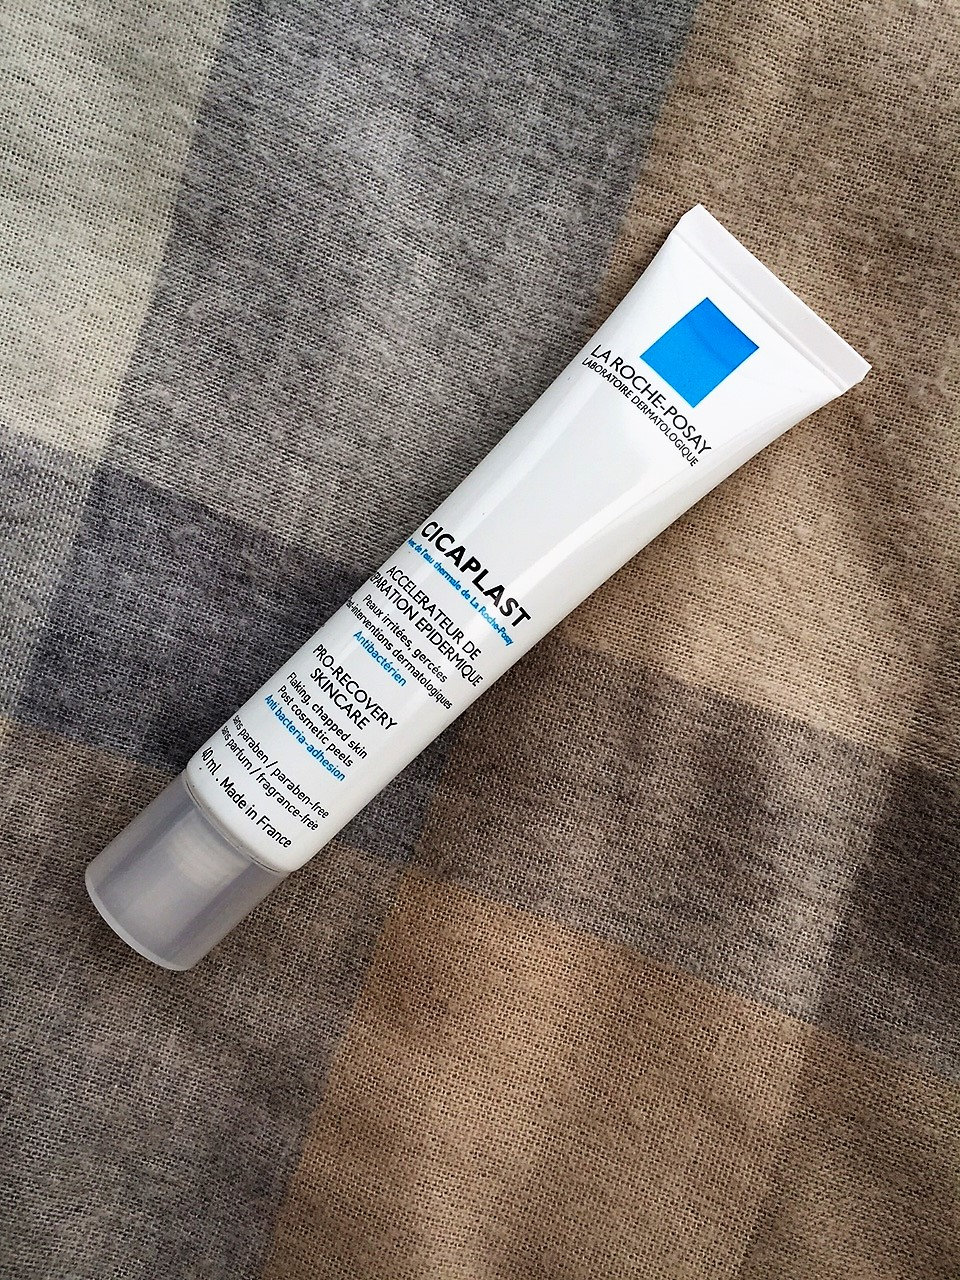 Best Skin Care Products: LA ROCHE-POSAY - Cicaplast